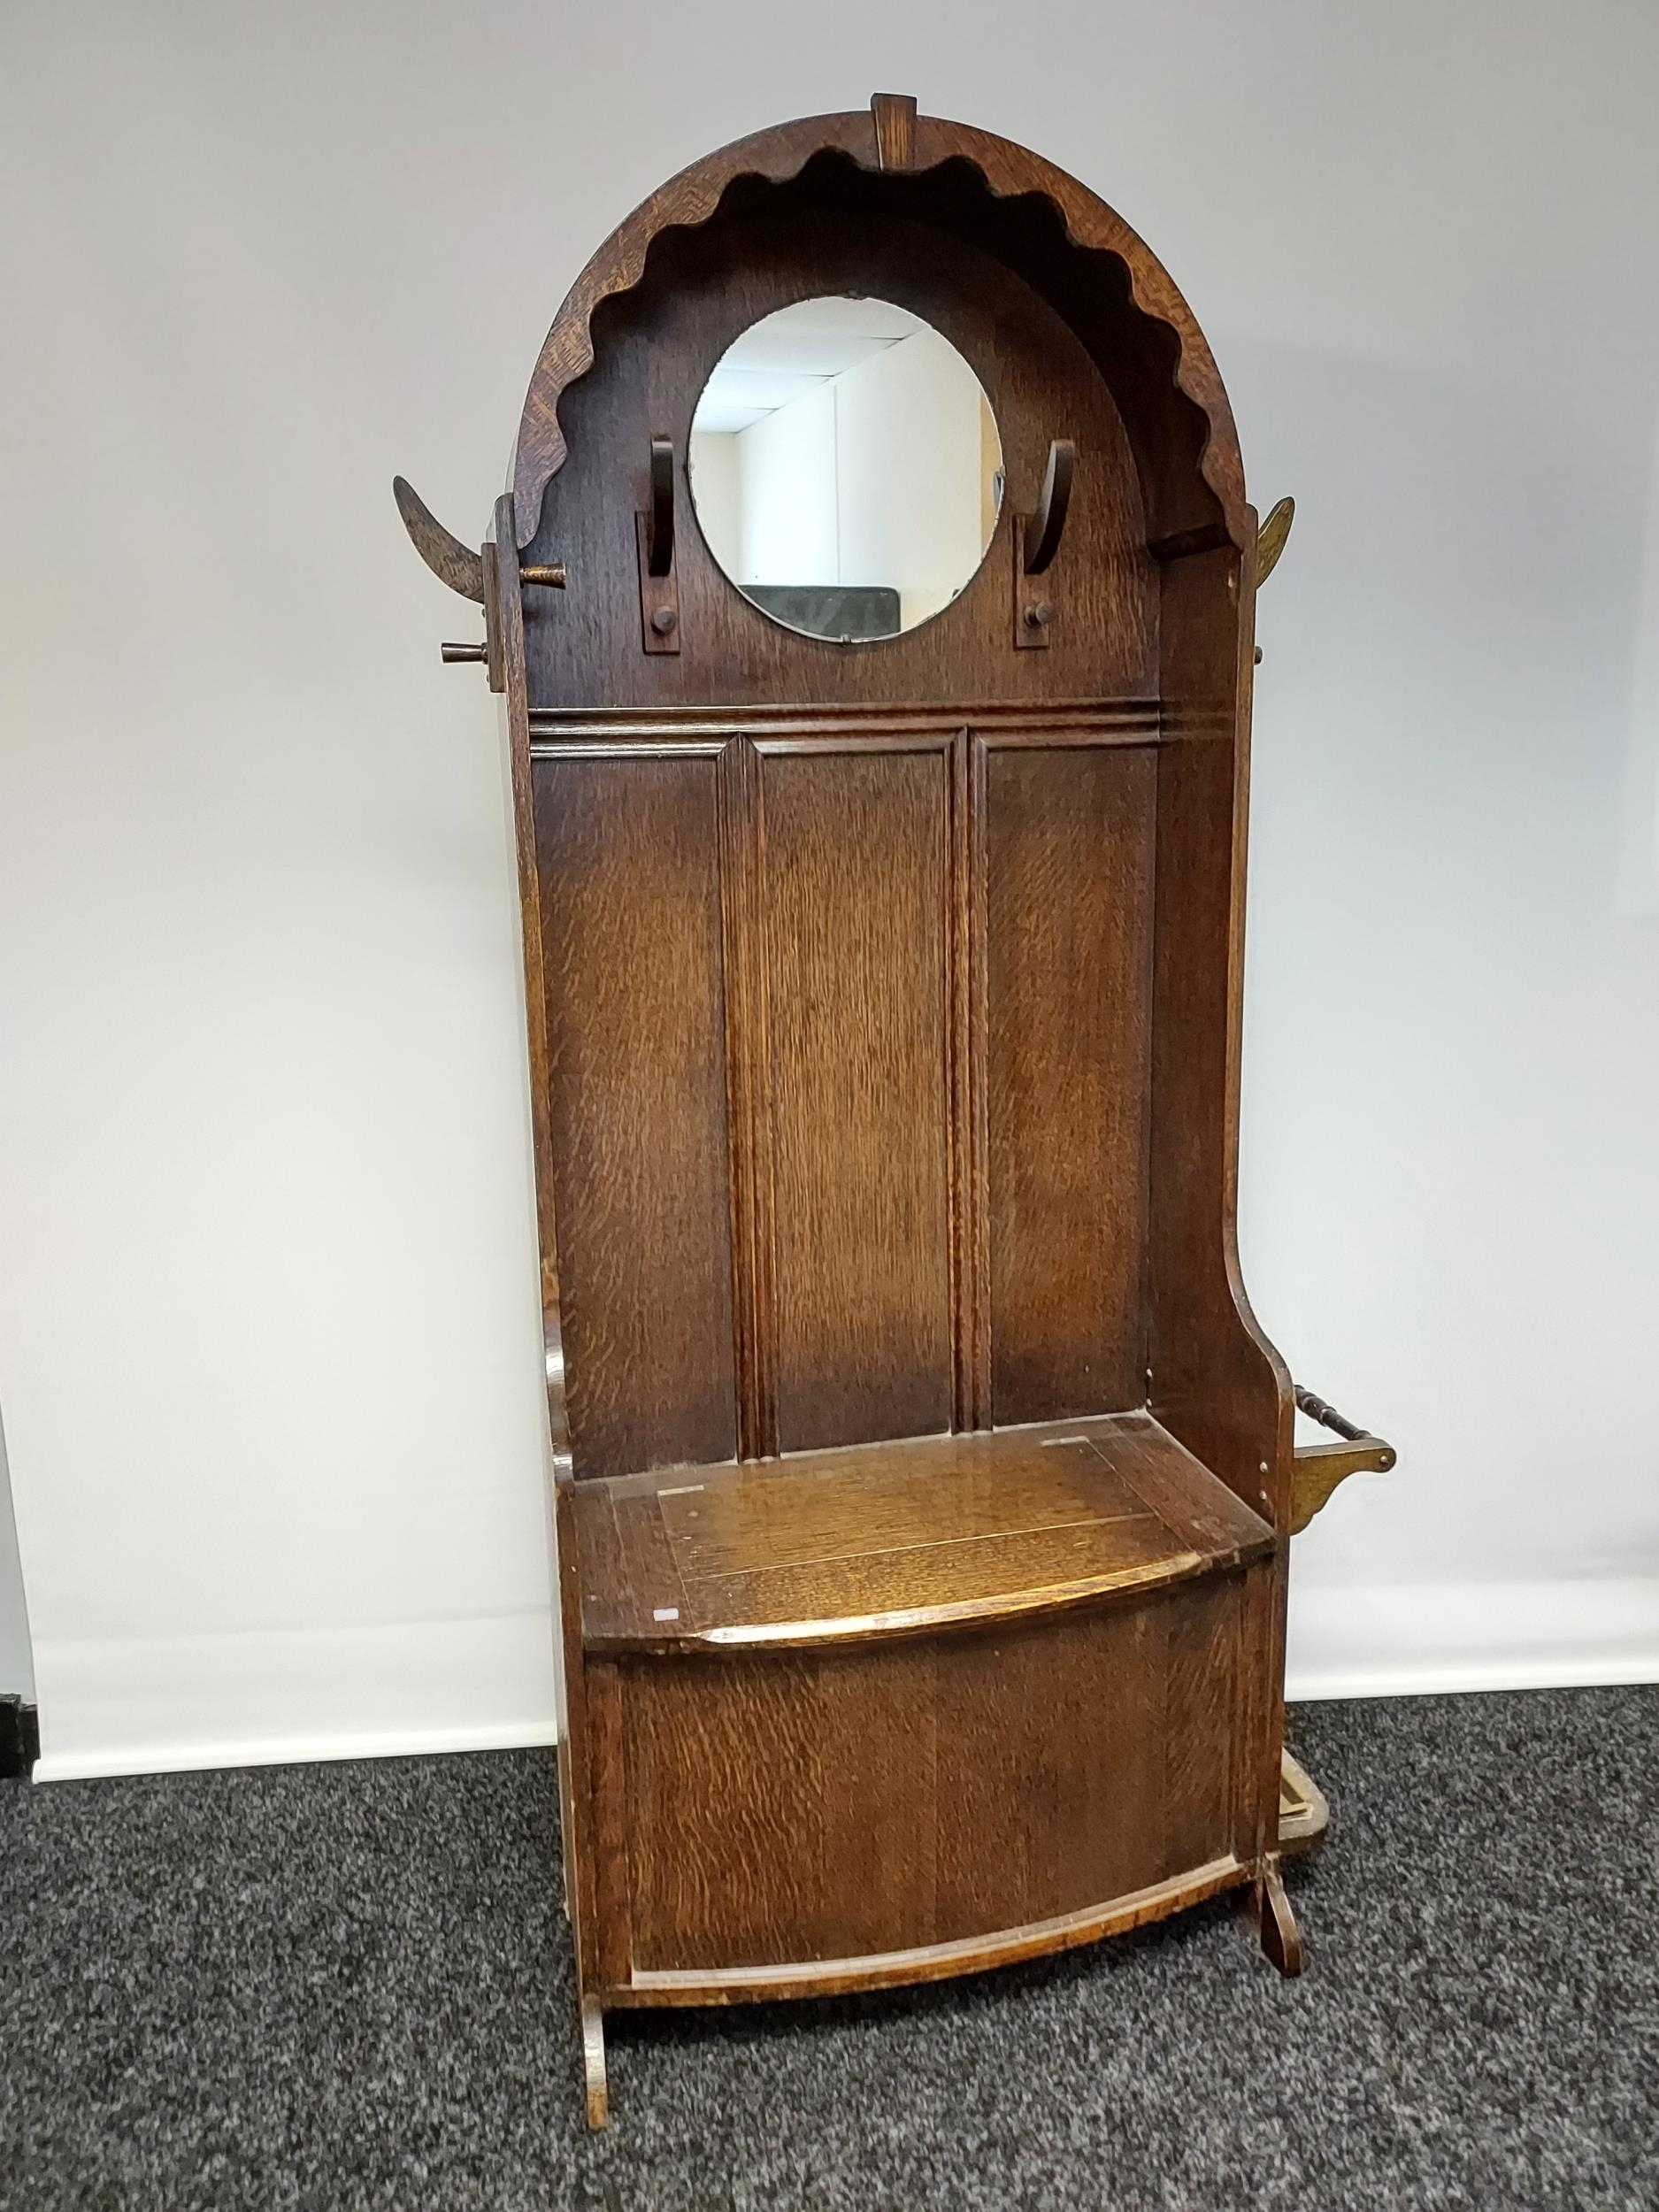 A nice example of an Art Deco oak, hall coat stand. Designed with a circular mirror, and lift up